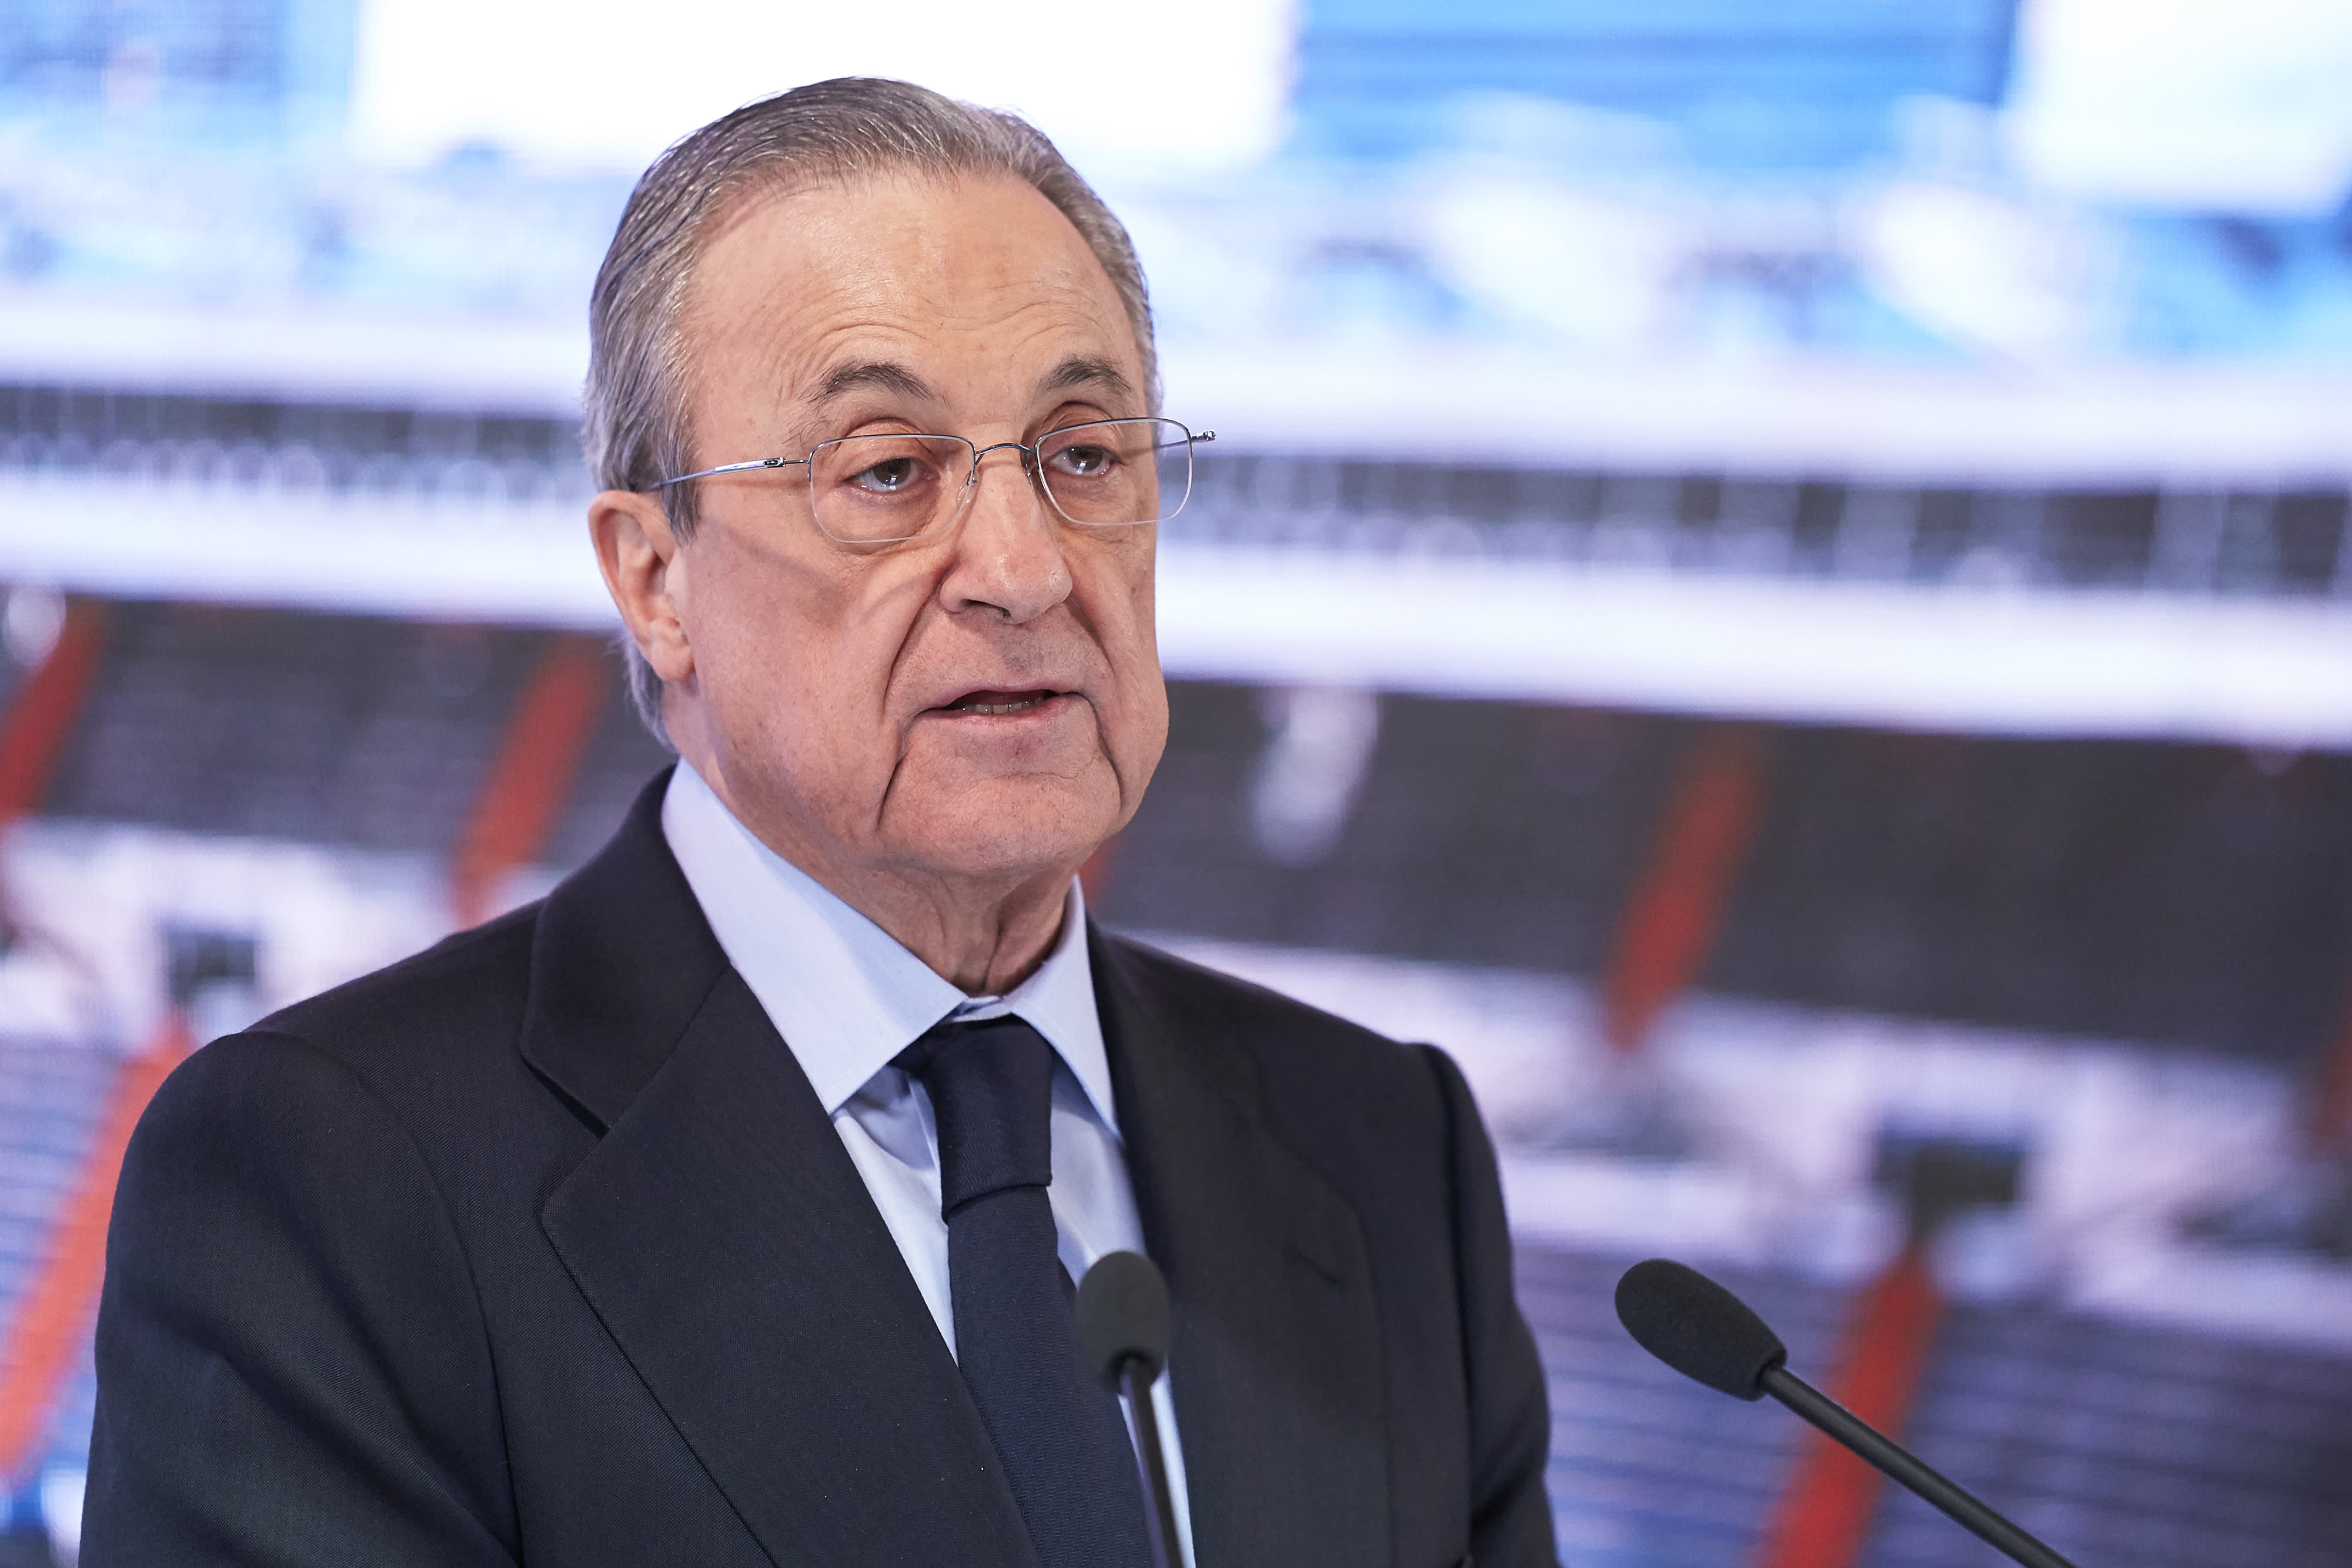 European Super League: Real Madrid president Florentino Perez says plans are not 'dead' despite withdrawals